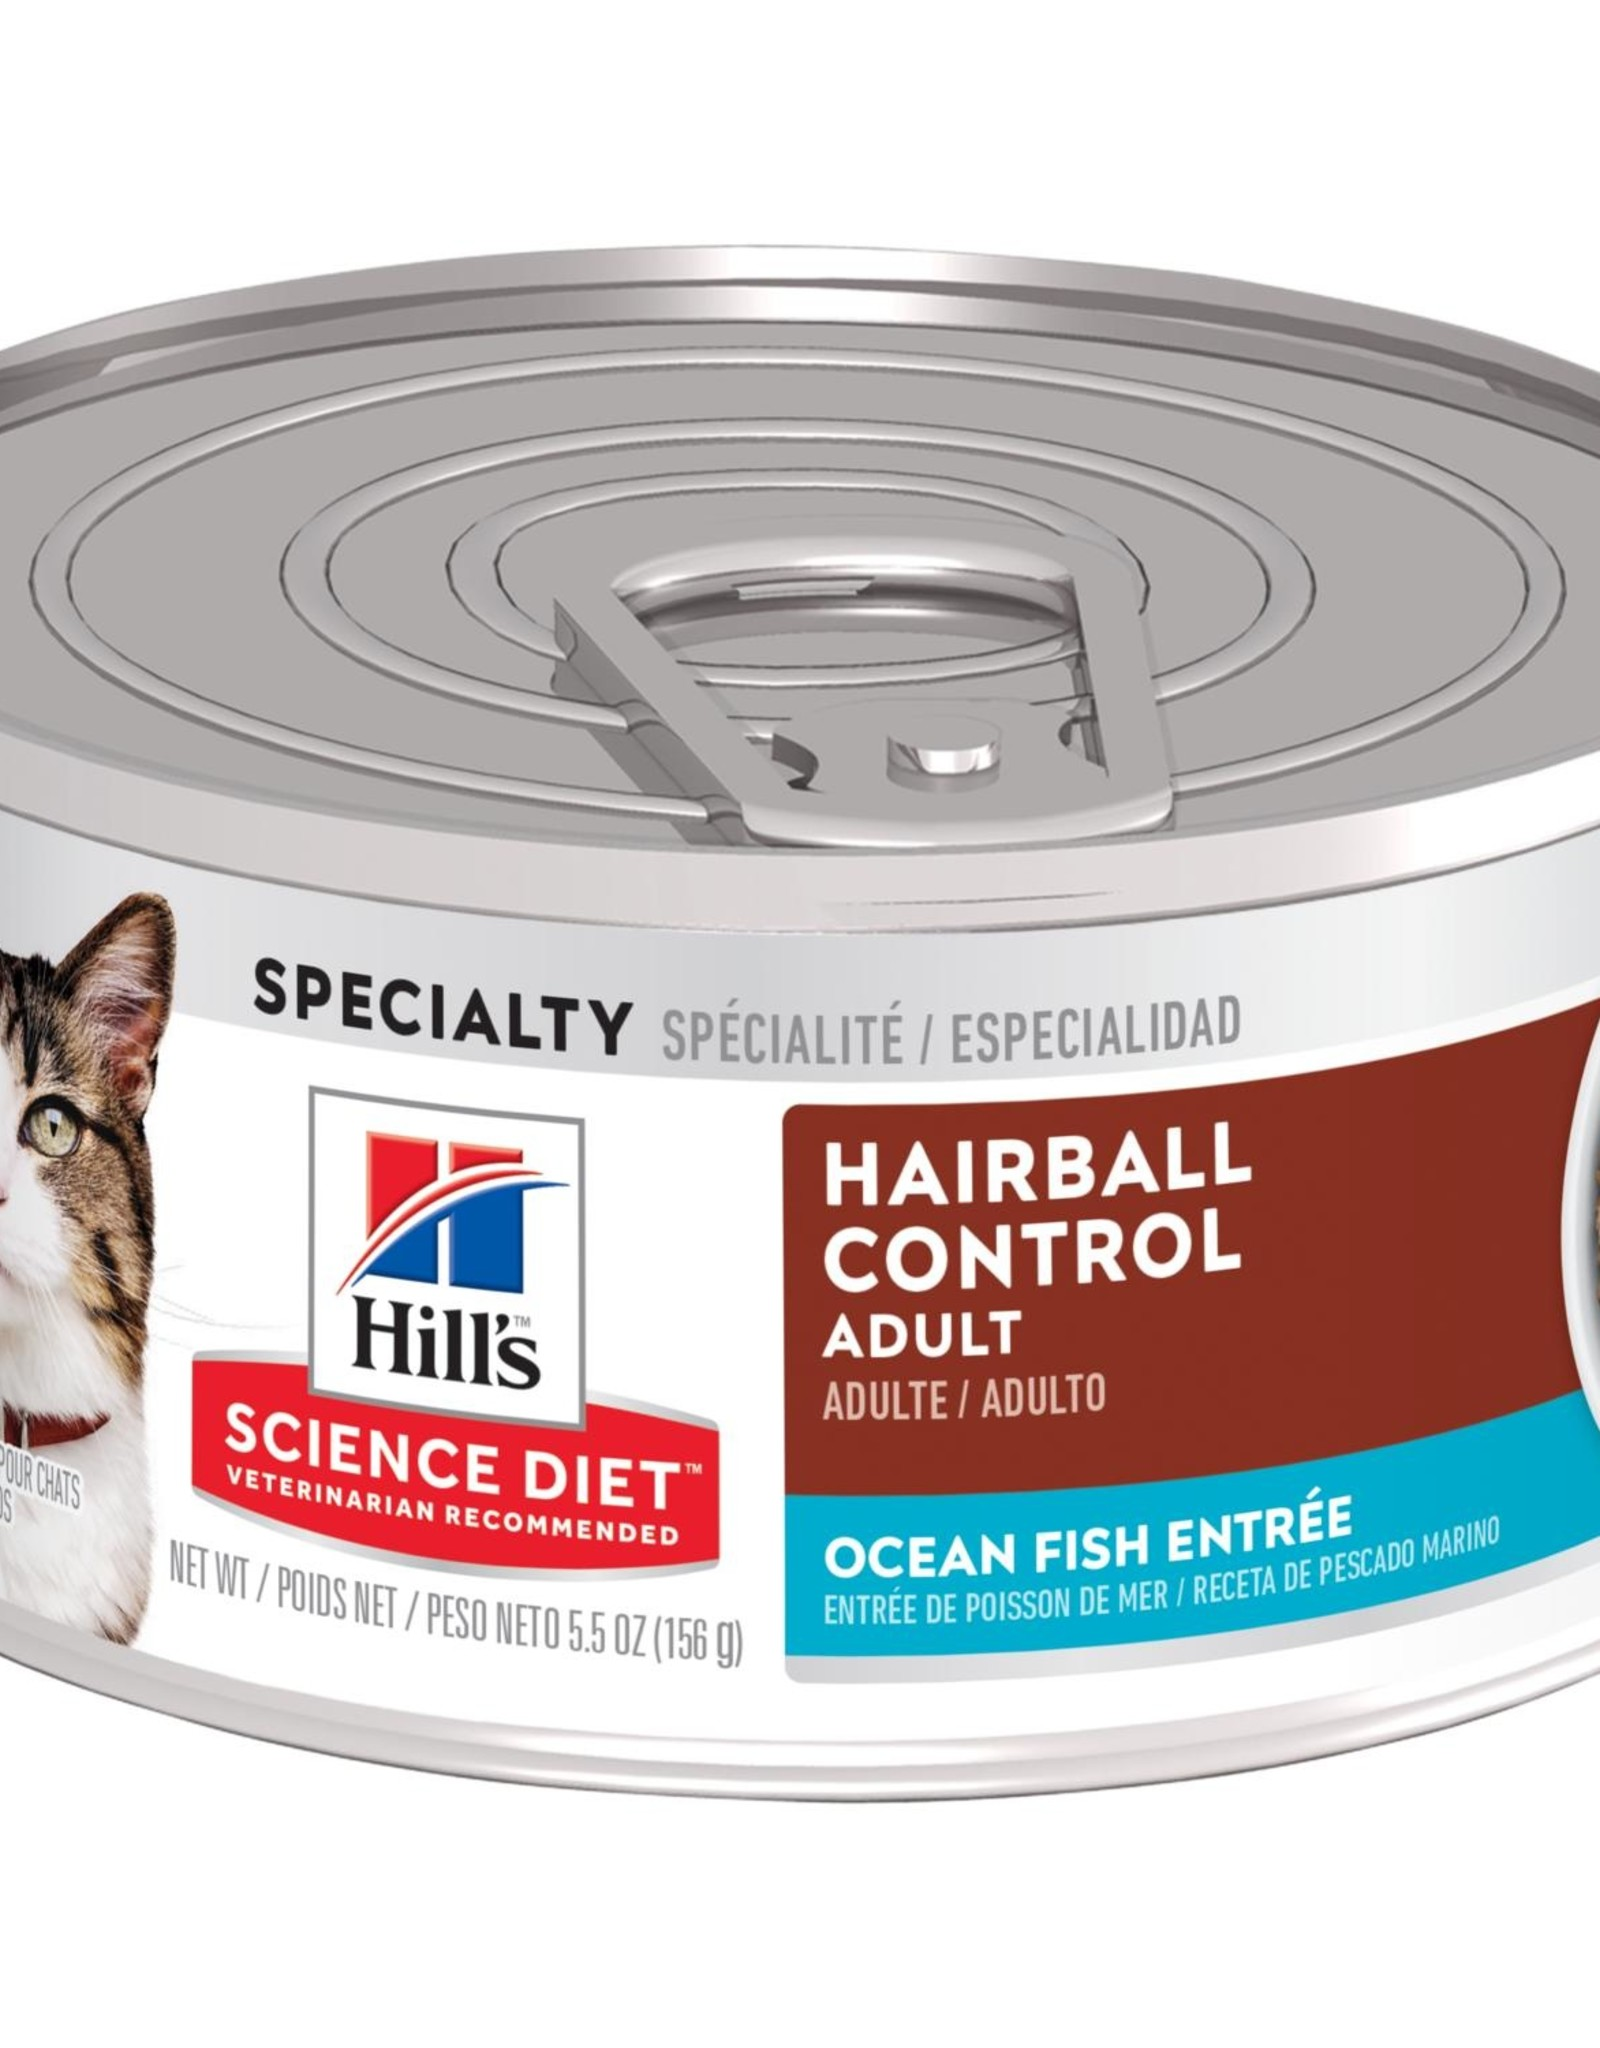 SCIENCE DIET HILL'S SCIENCE DIET FELINE CAN ADULT HAIRBALL SEAFOOD 5.5OZ